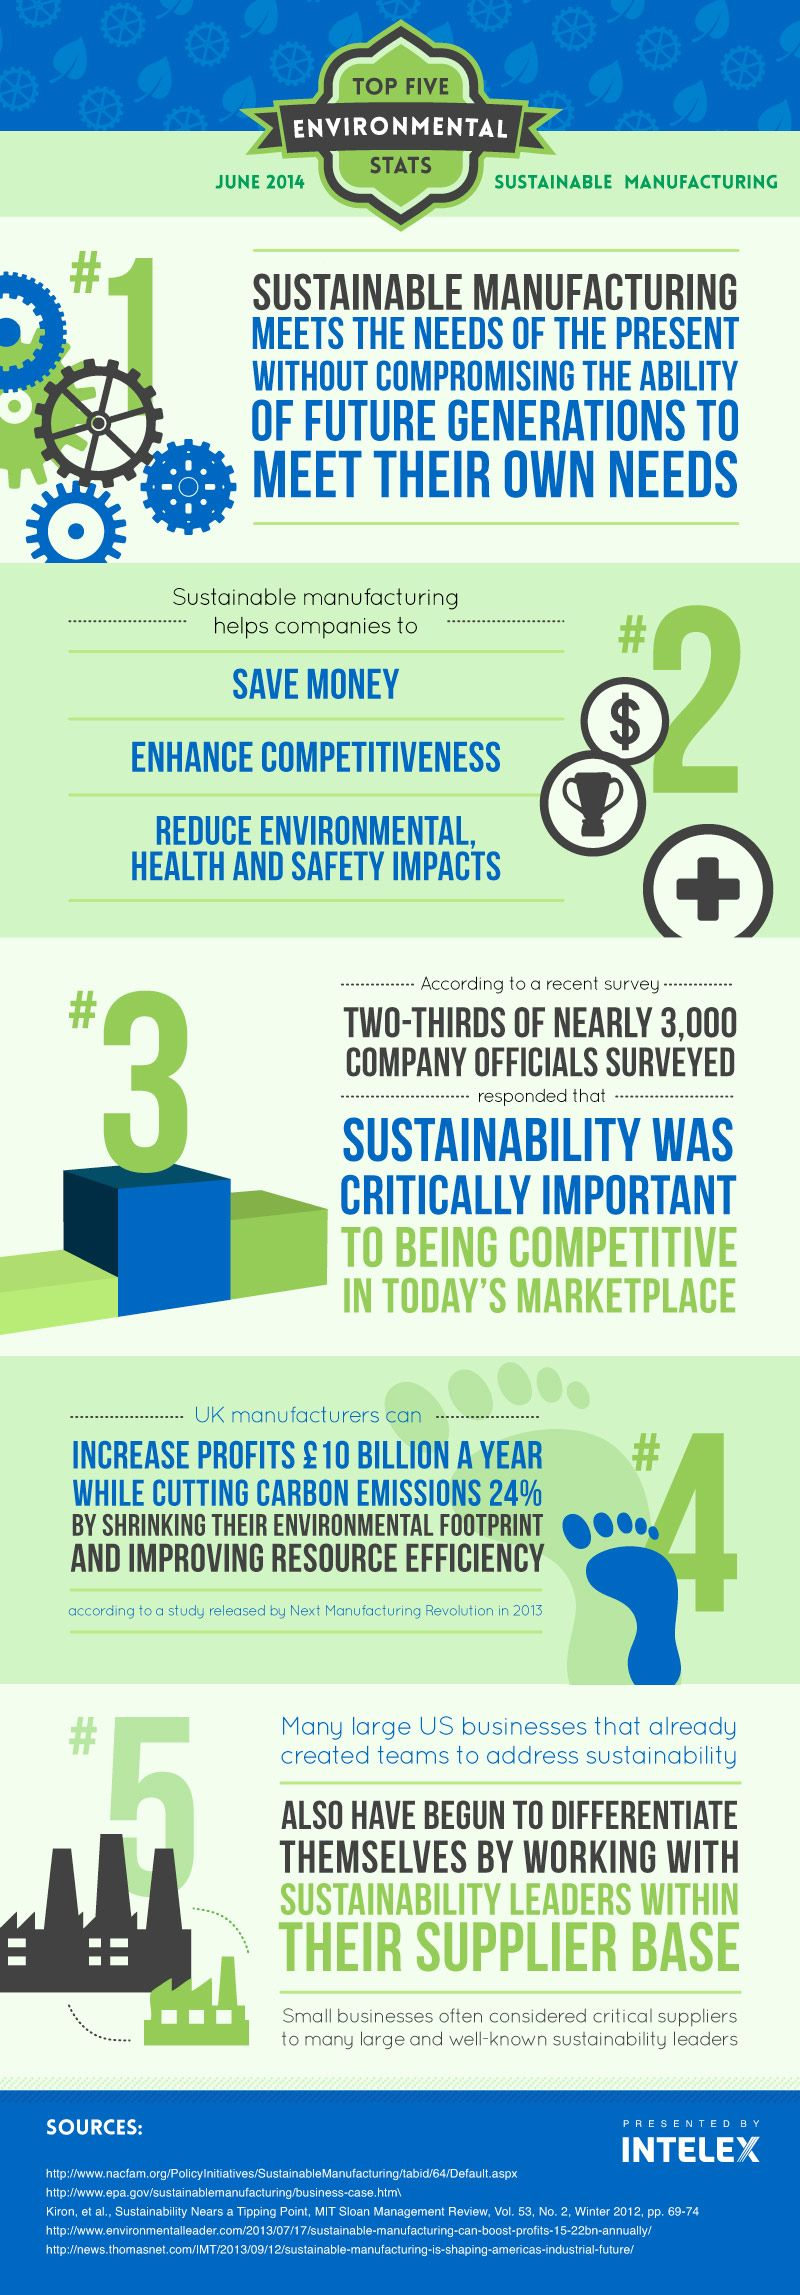 Intelex Top 5 Environmental Statistics - Sustainable Manufacturing ...